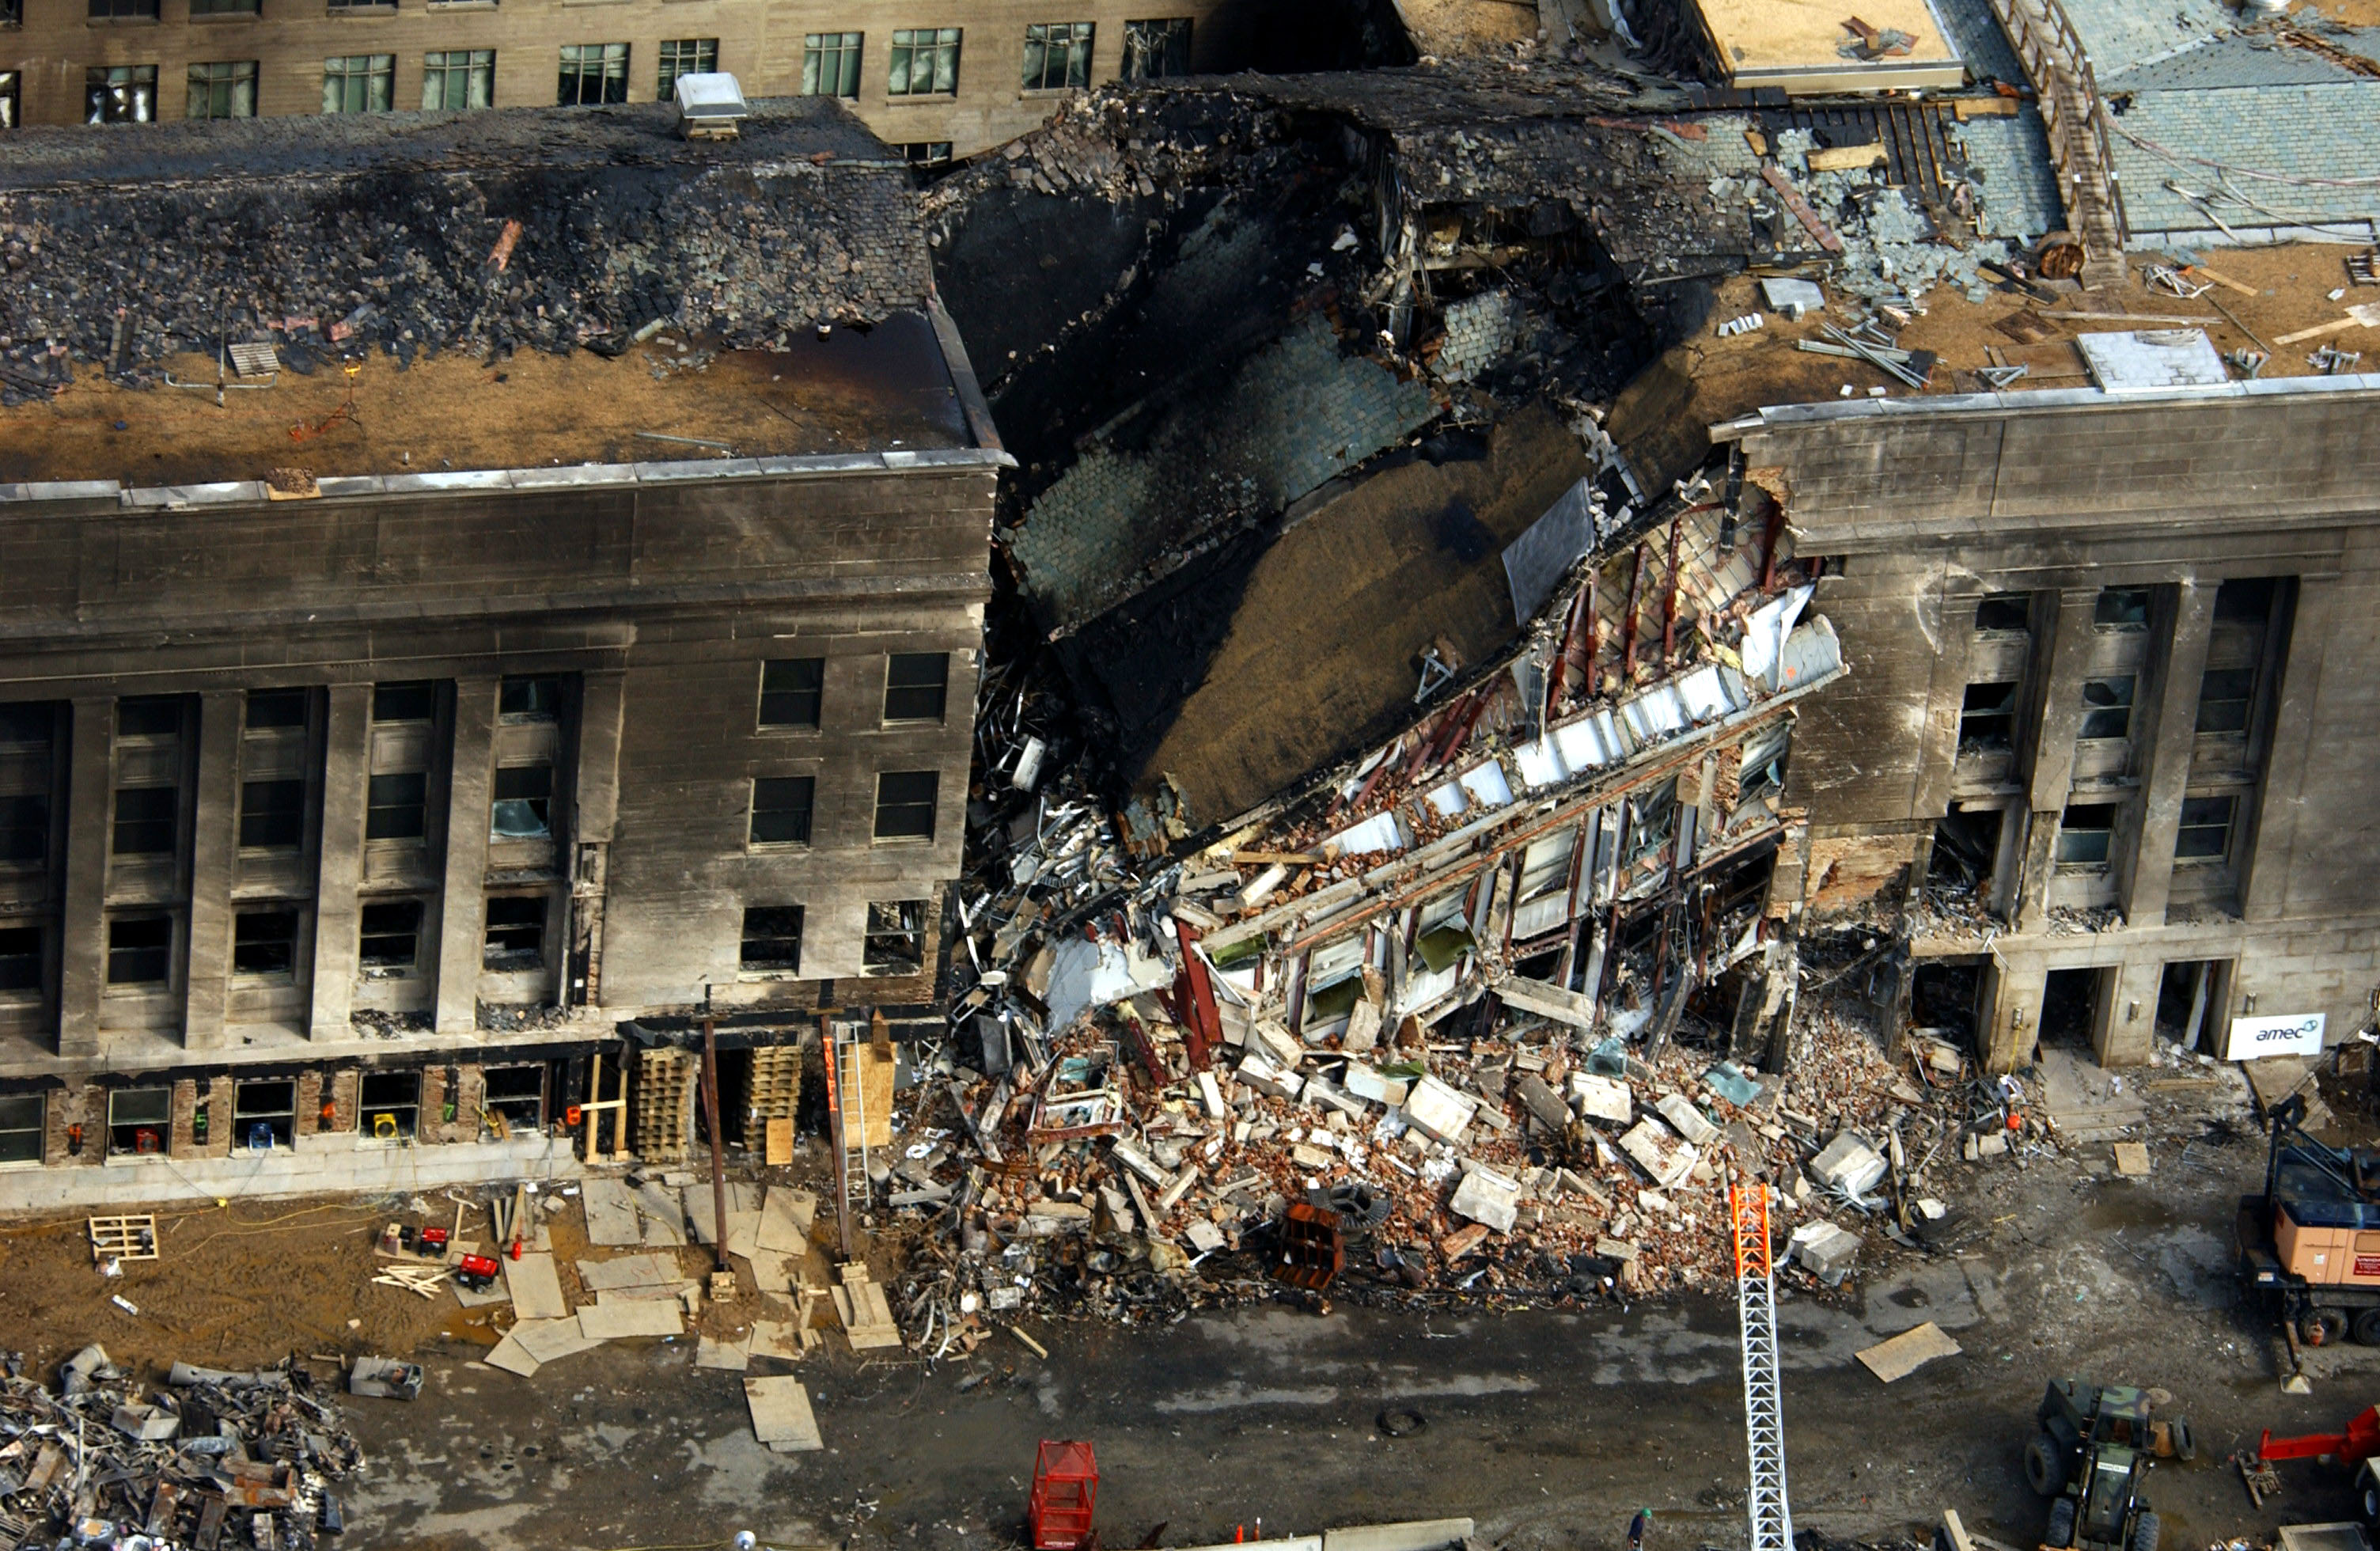 Did Boeing hit the Pentagon Building on September 11, 2001